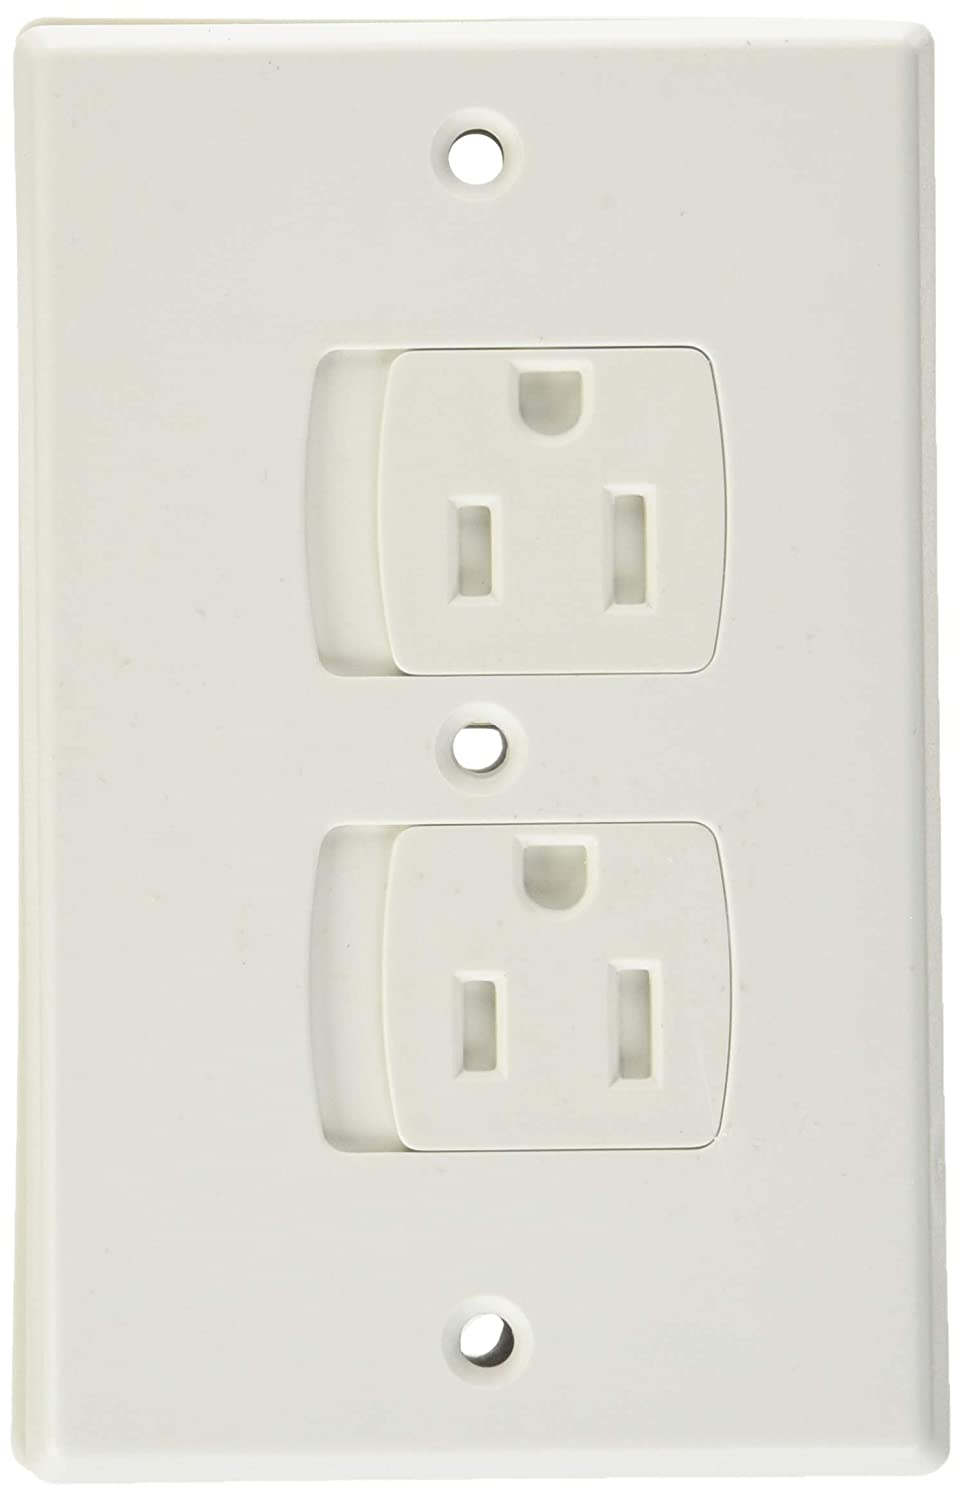 Amazon Com Child Safety Electrical Outlet Covers For Baby Proofing Best Childproofing Self Closing Bpa Free Wall Socket Plate Better Than Plugs Set Of 2 White Baby